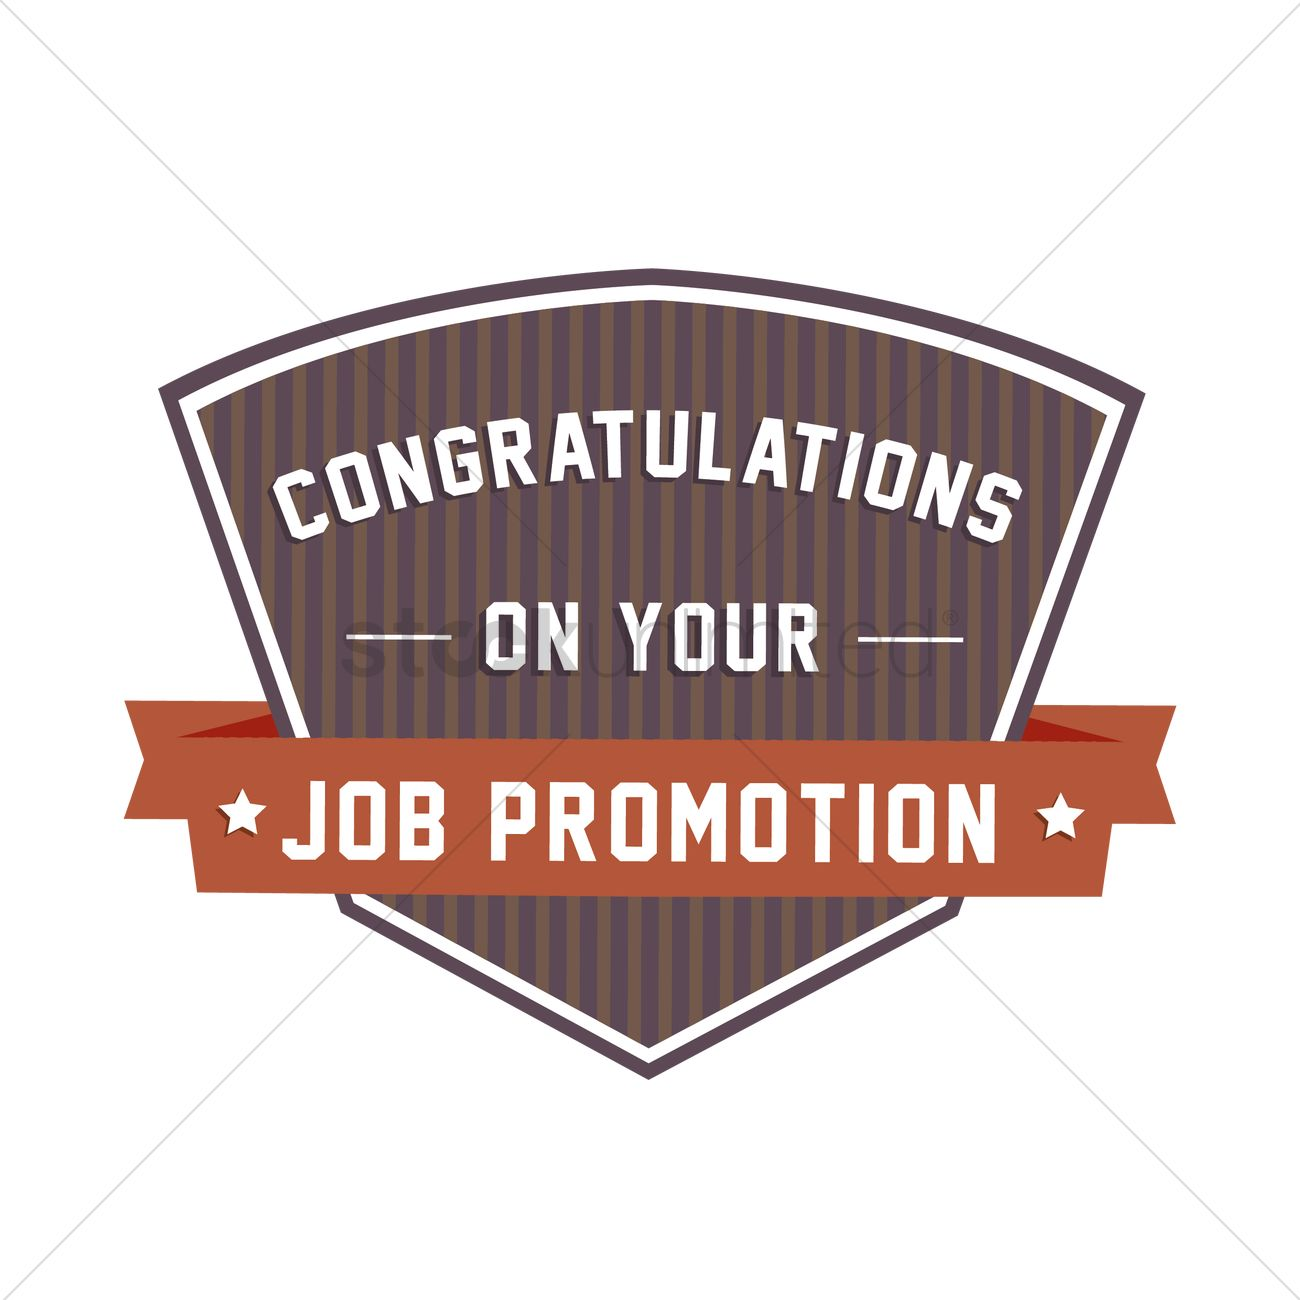 congrats congratulation congratulations congratulate congratulatory message on job promotion